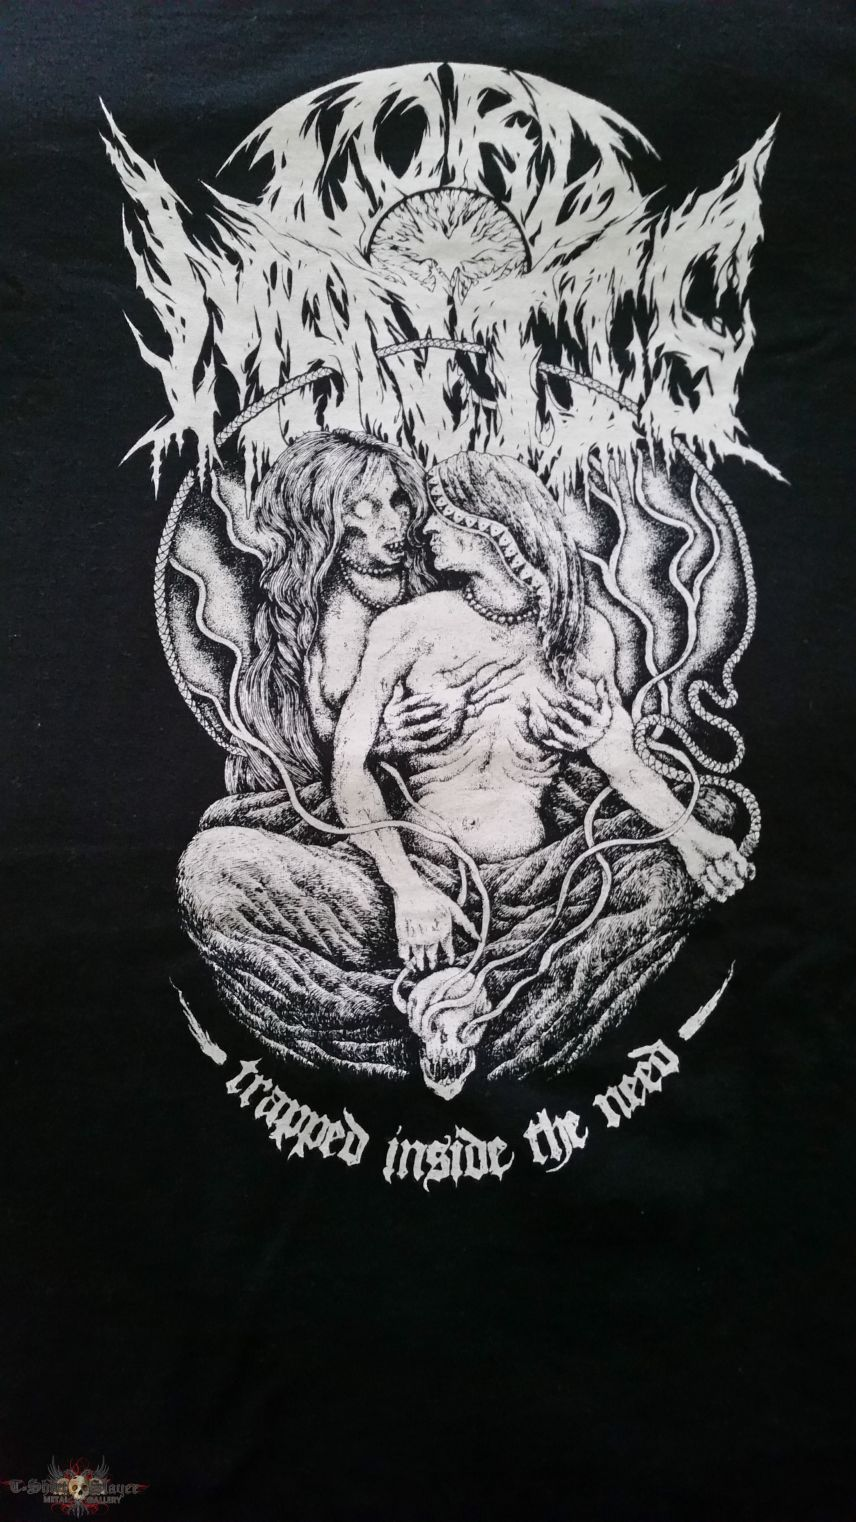 Lord Mantis - Trapped Inside The Need Shirt